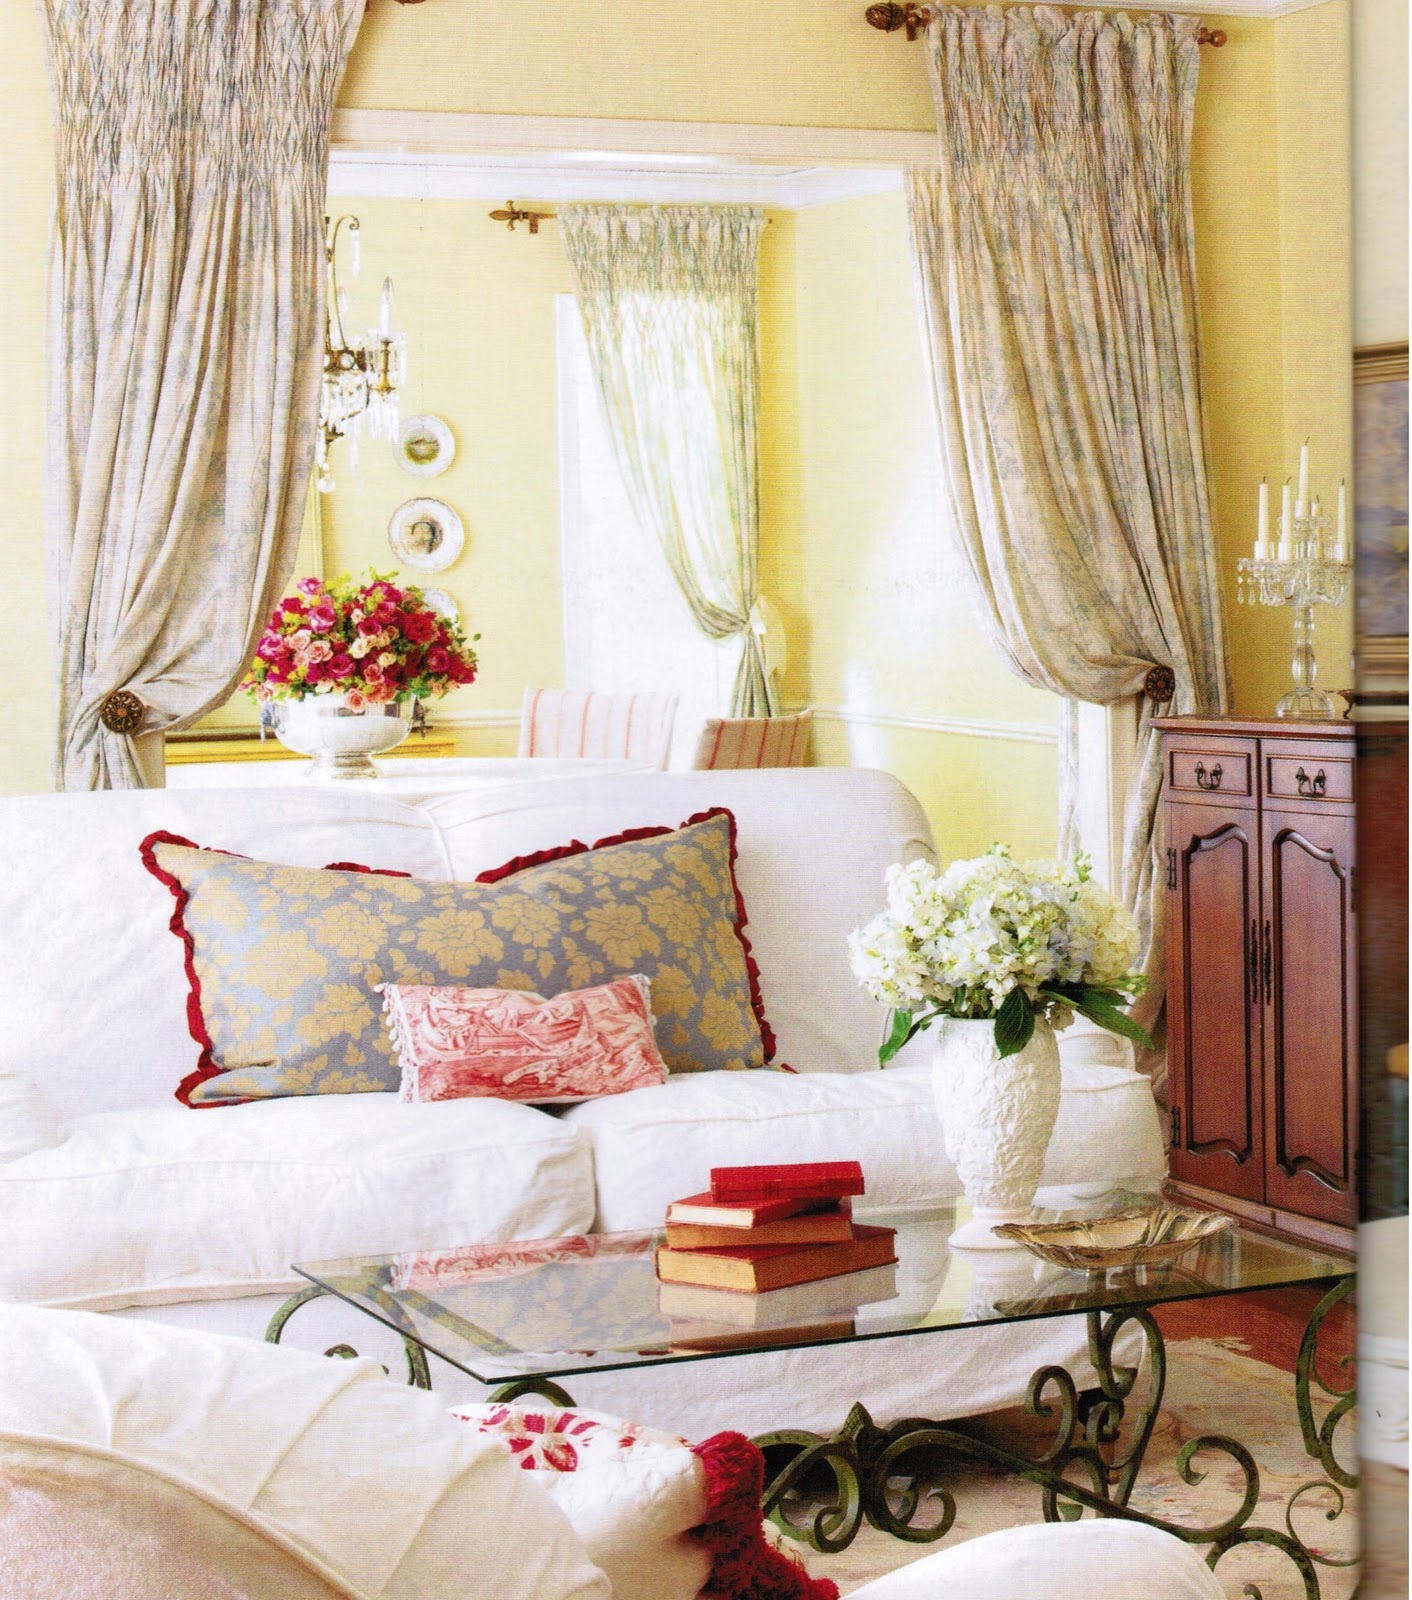 Maison decor french country enchanting yellow white for Country decorating living room ideas